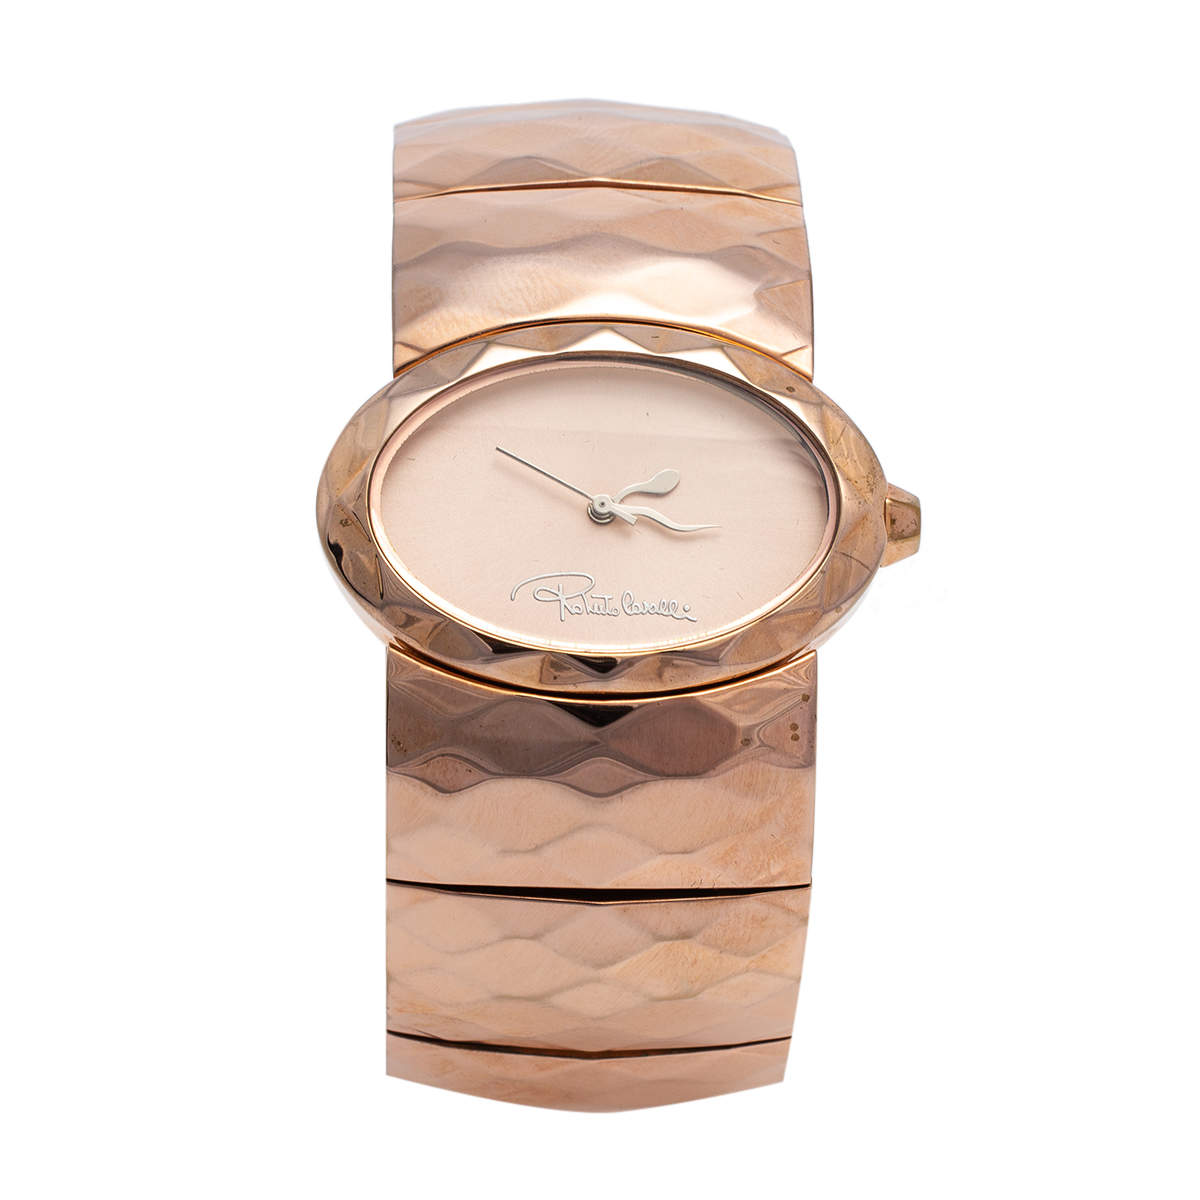 Roberto Cavalli Champagne Pink Rose Gold Plated Stainless Steel R7253133517 Women's Wristwatch 36 MM